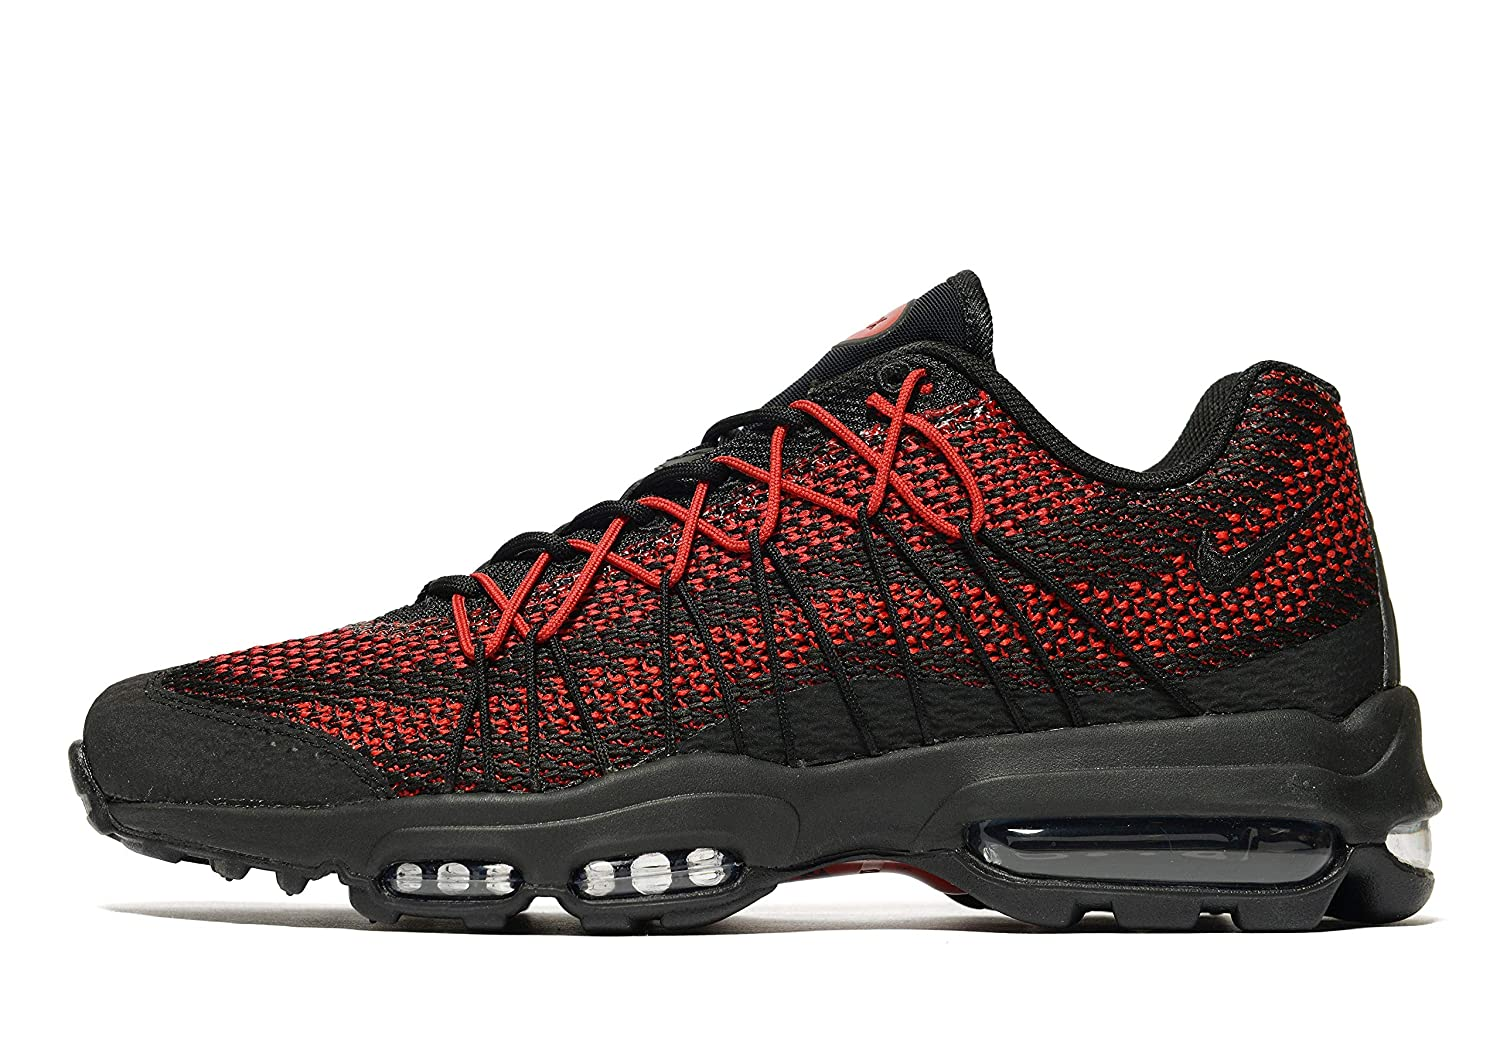 finest selection ca765 8c236 Nike Men s Air Max 95 Ultra JCRD Men s Trainers Size UK 11.5 EUR 47 Black Red   Amazon.co.uk  Shoes   Bags